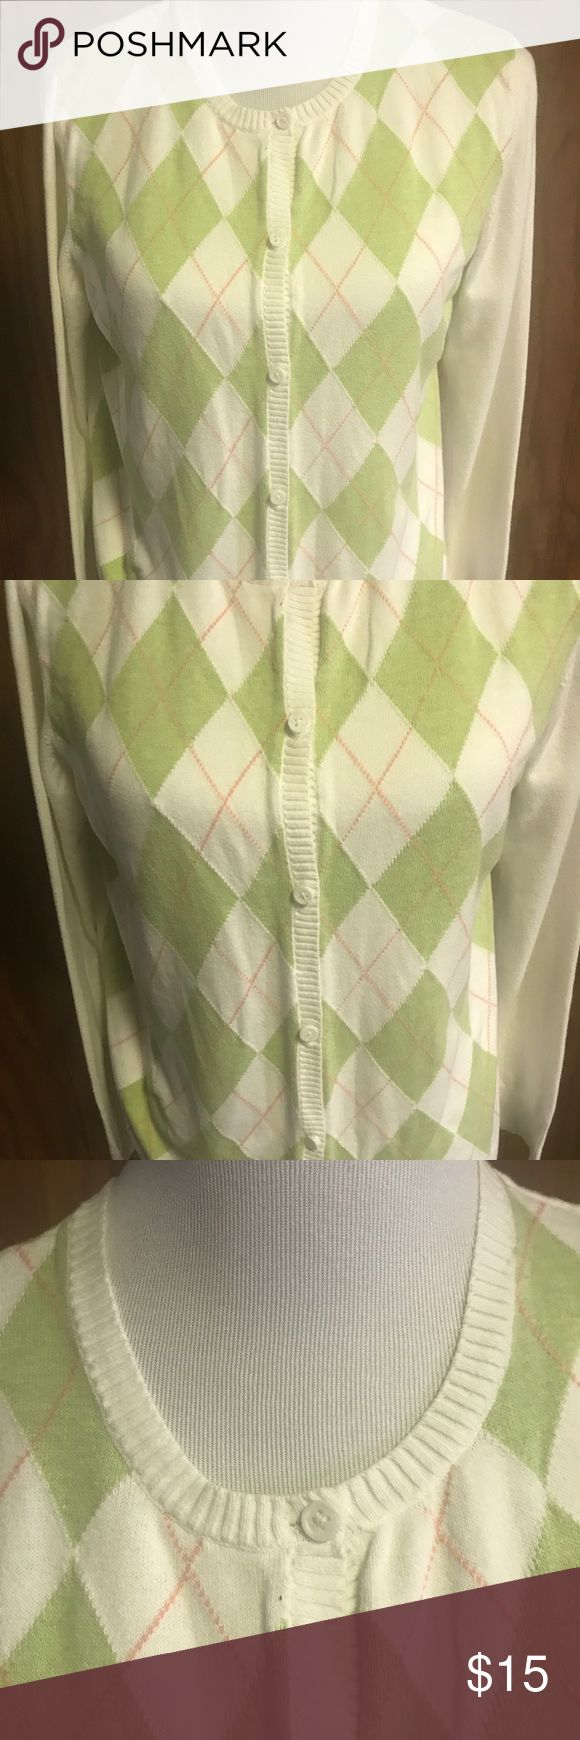 """Cherokee Brand Argyle Sweater Size Xl Button Down Cherokee Brand Size XL argyle sweater button down front green and coral on white color fabric. Long sleeves and 6 button down closure ribbed knit bands on cuff and hem. Measurements laying flat and buttoned: shoulder to hem 34"""" underarm to underarm 19"""" Sleeve 23"""" Cherokee Brand Sweaters Cardigans"""